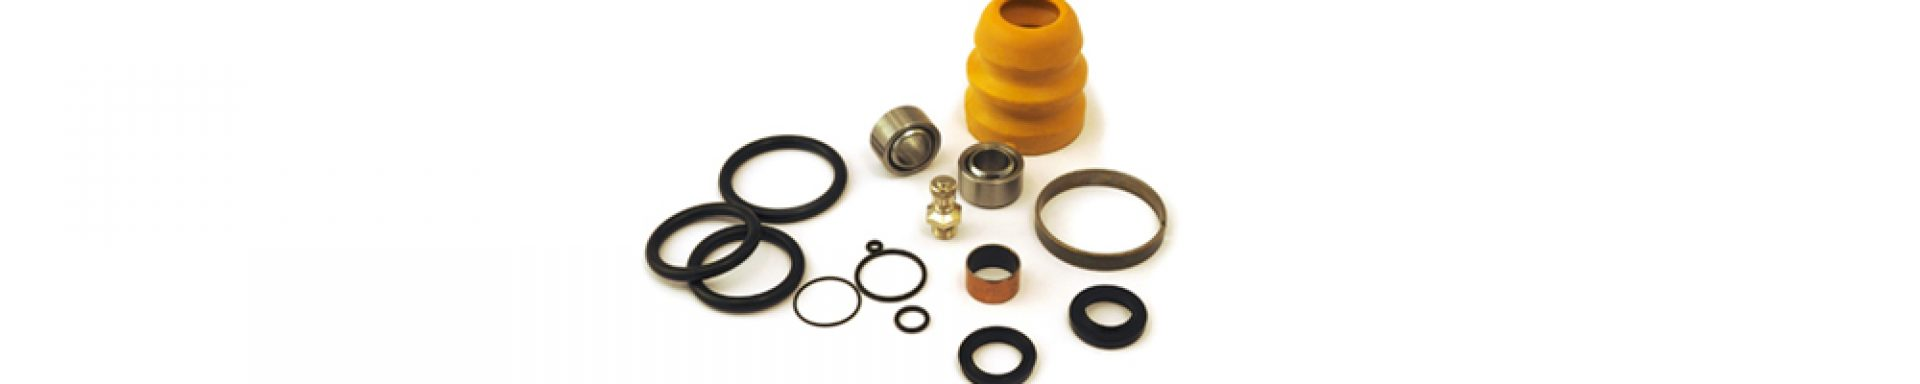 Forks & Shock Absorbers Parts